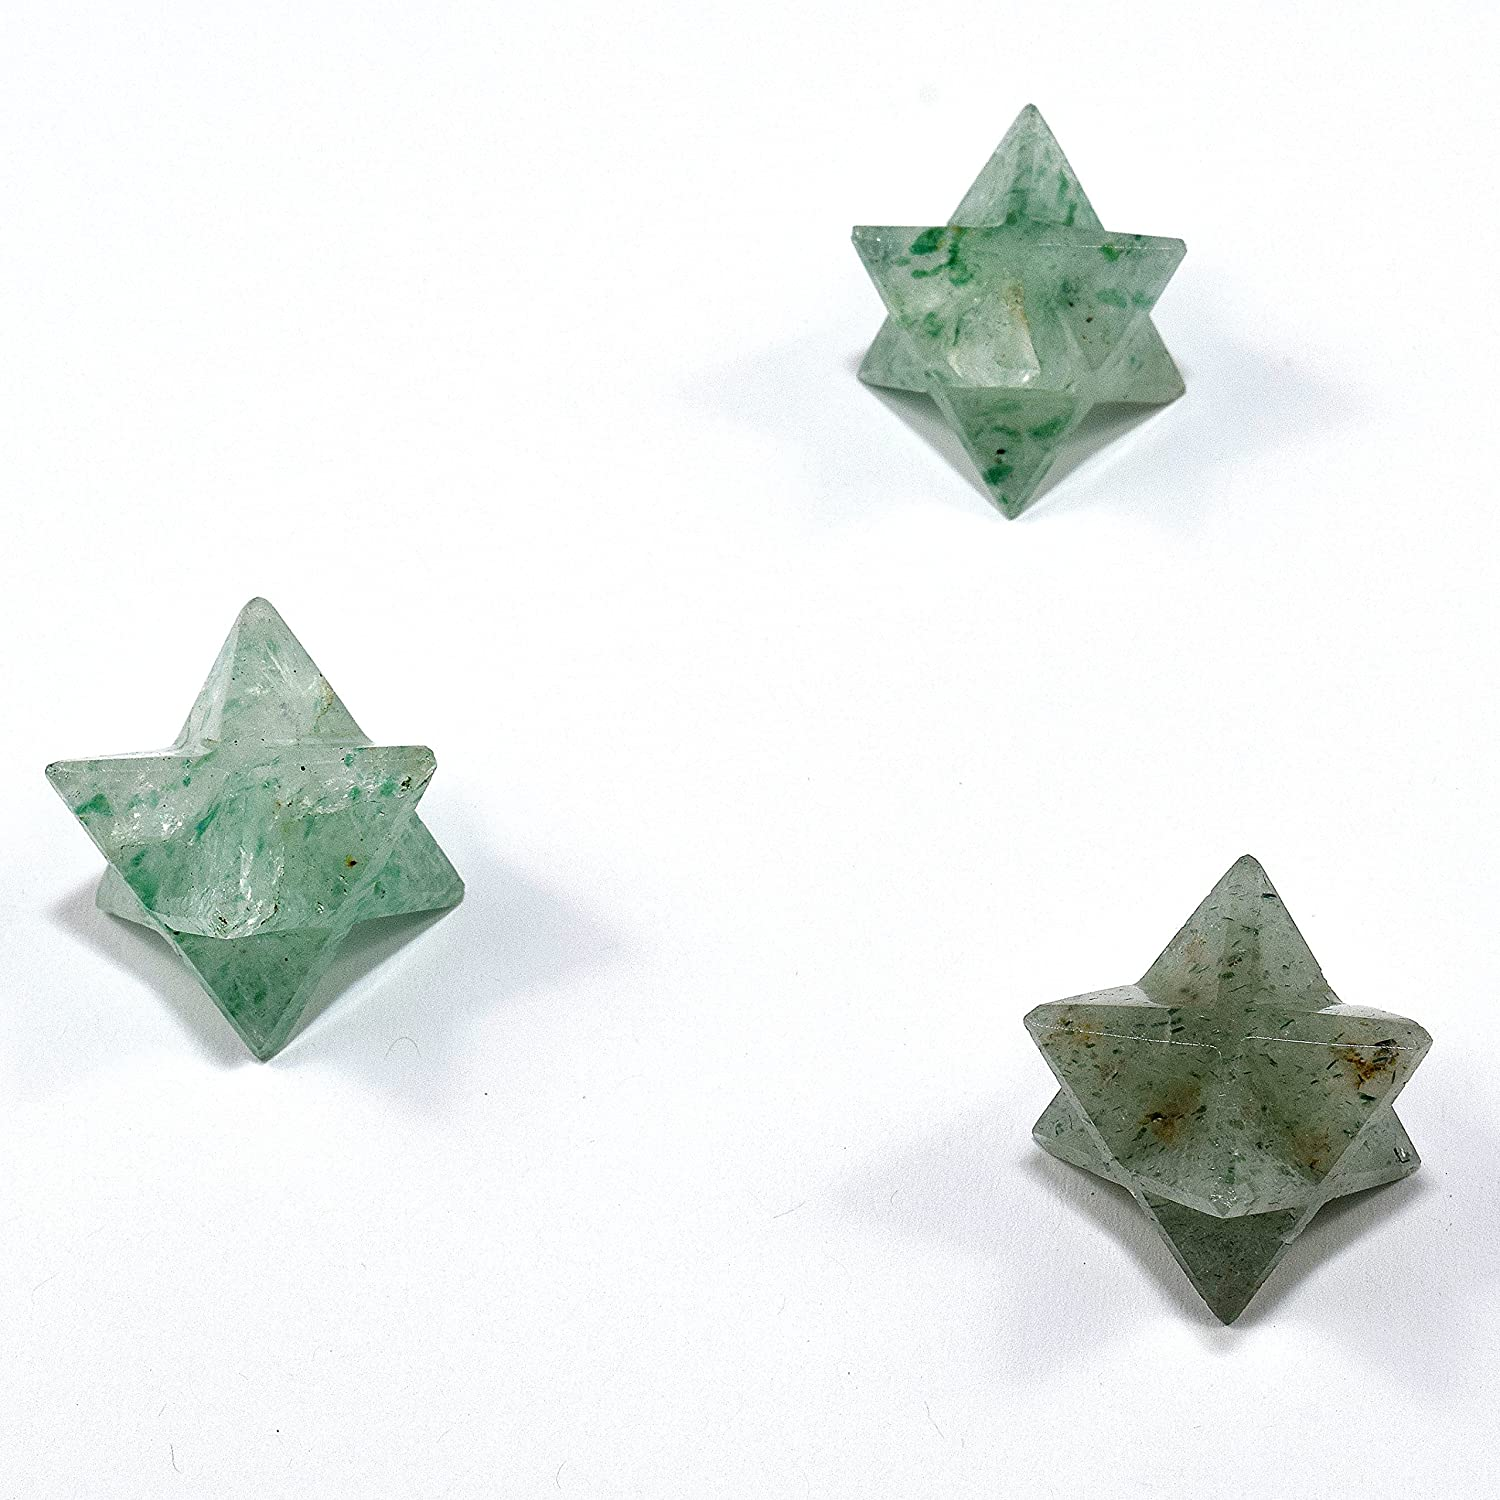 25mm Prasiolite 8 Point Merkaba Star Natural Green Quartz Mineral Sparkling Crystal Polished Stone Star - India (1PC) HQRP